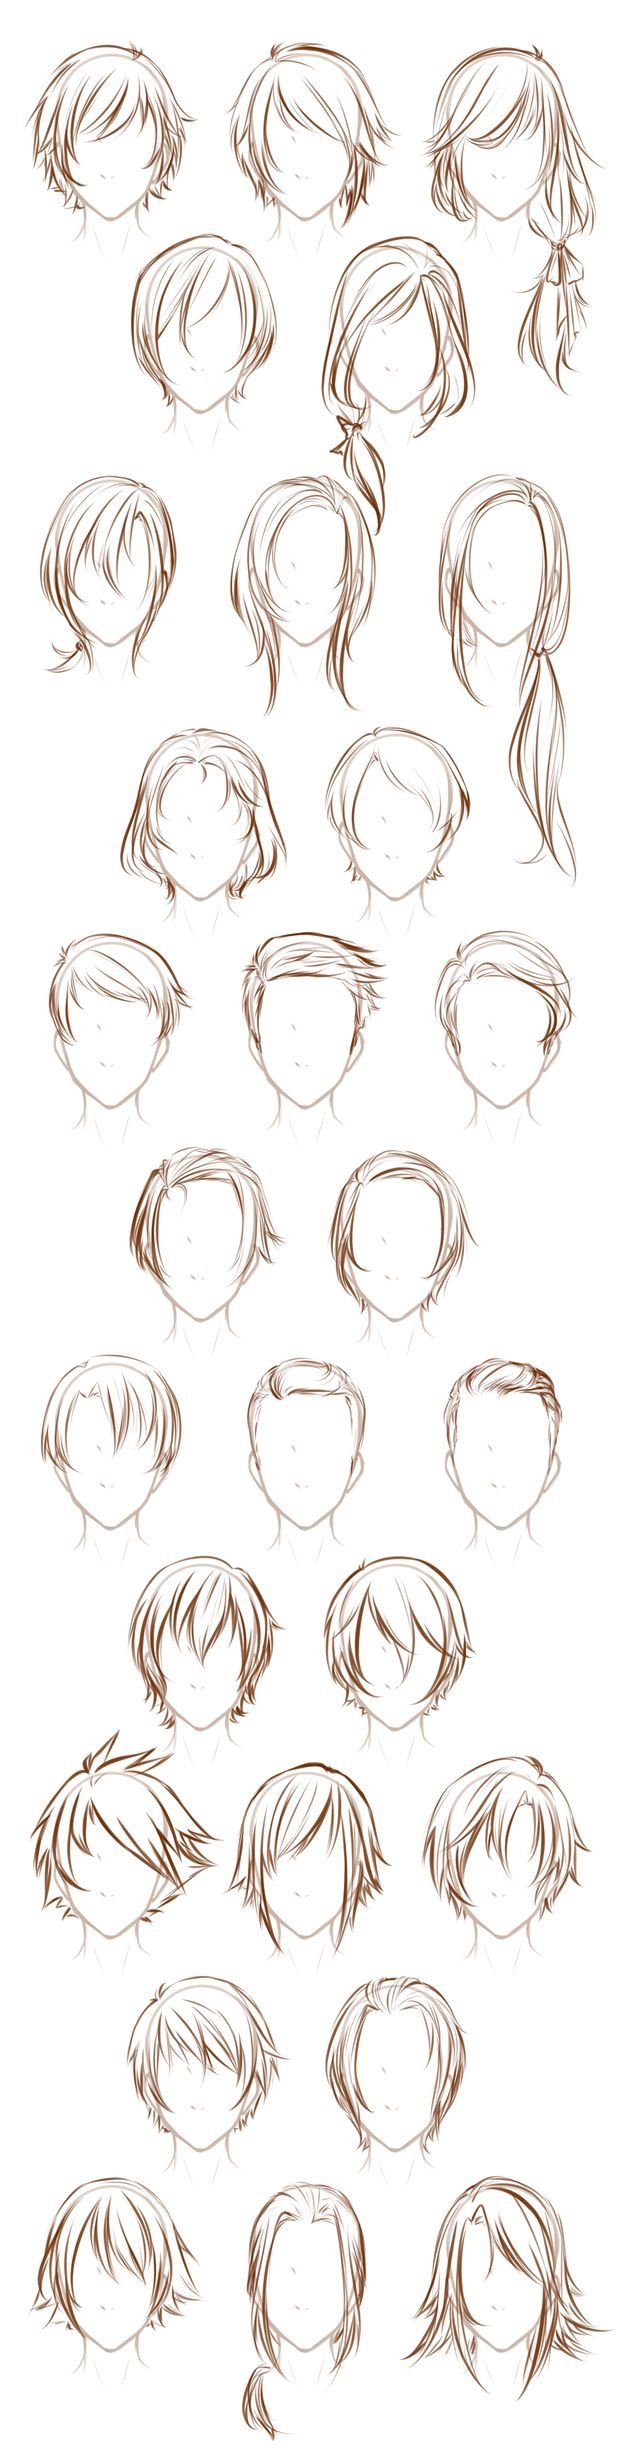 Different Types Of Hairstyles For Both Men And Women Drawing Tools Inspiration Creativity Reference Sheet Gu How To Draw Hair Art Tutorials Hair Sketch